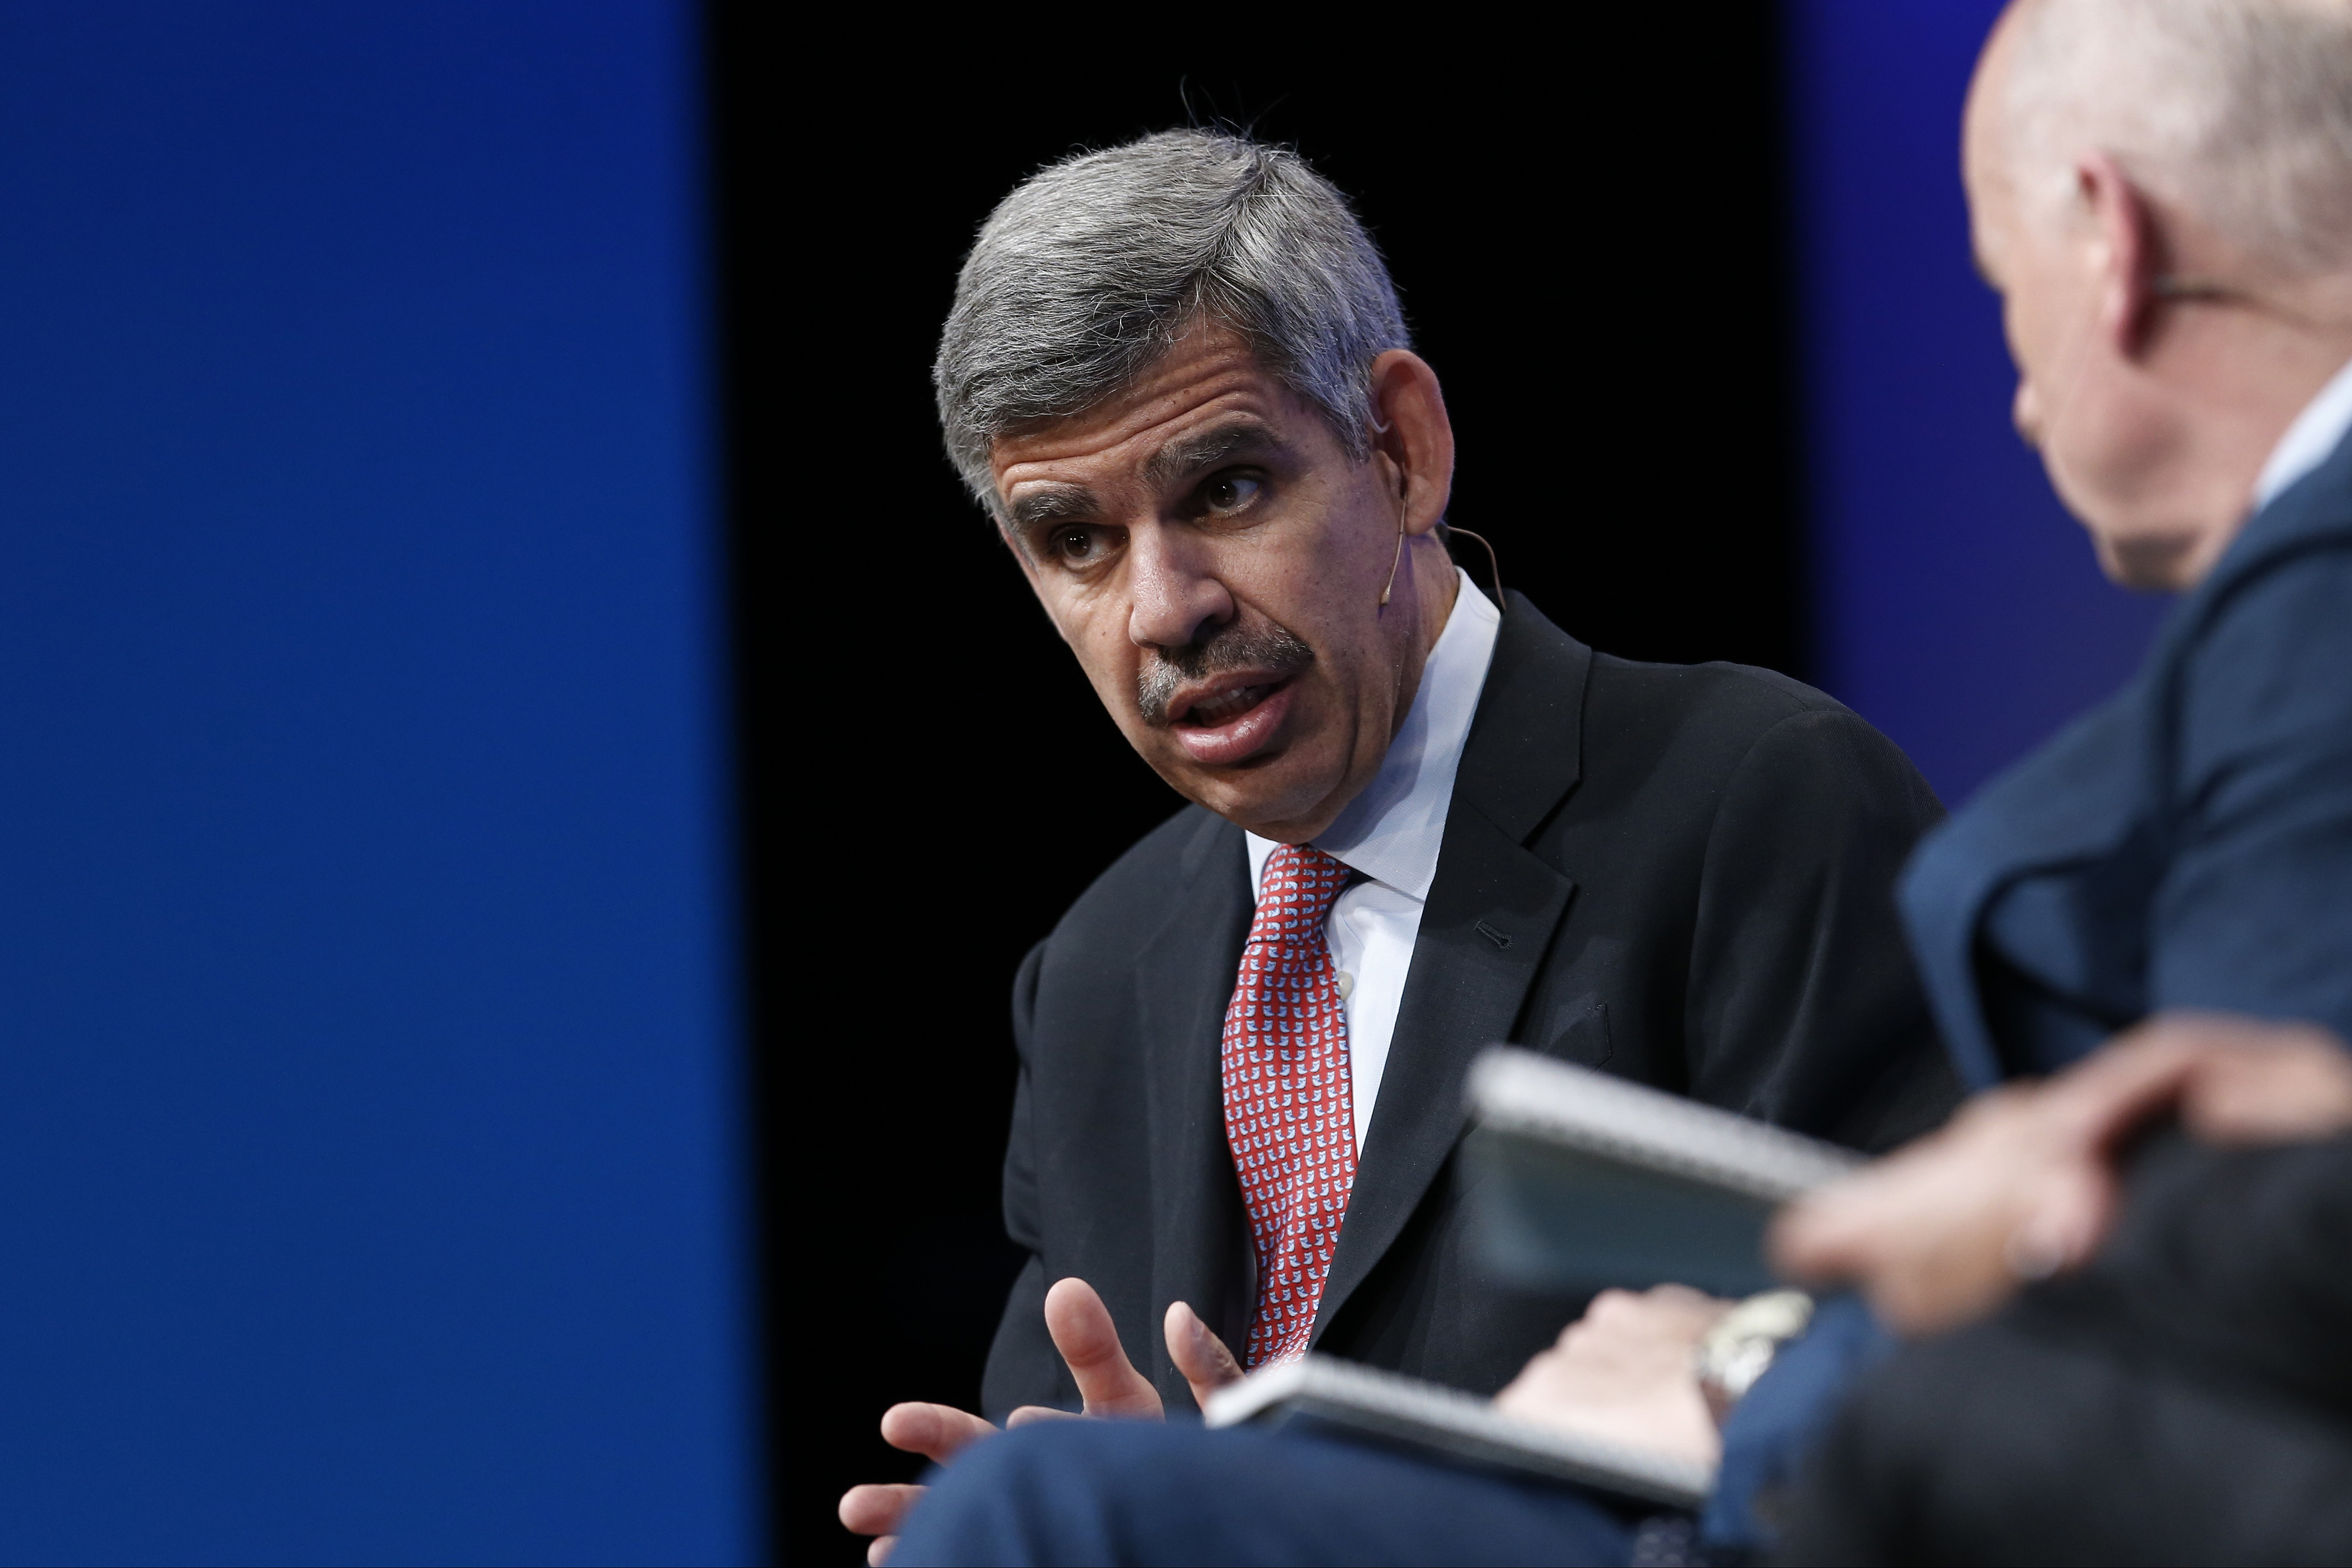 Mohamed El-Erian, chief economic advisor at Allianz SE, speaks during the annual Milken Institute Global Conference in Beverly Hills, California, U.S., on Monday, April 27, 2015. The conference brings together hundreds of chief executive officers, senior government officials and leading figures in the global capital markets for discussions on social, political and economic challenges. Photographer: Patrick T. Fallon/Bloomberg *** Local Caption *** Mohamed El-Erian